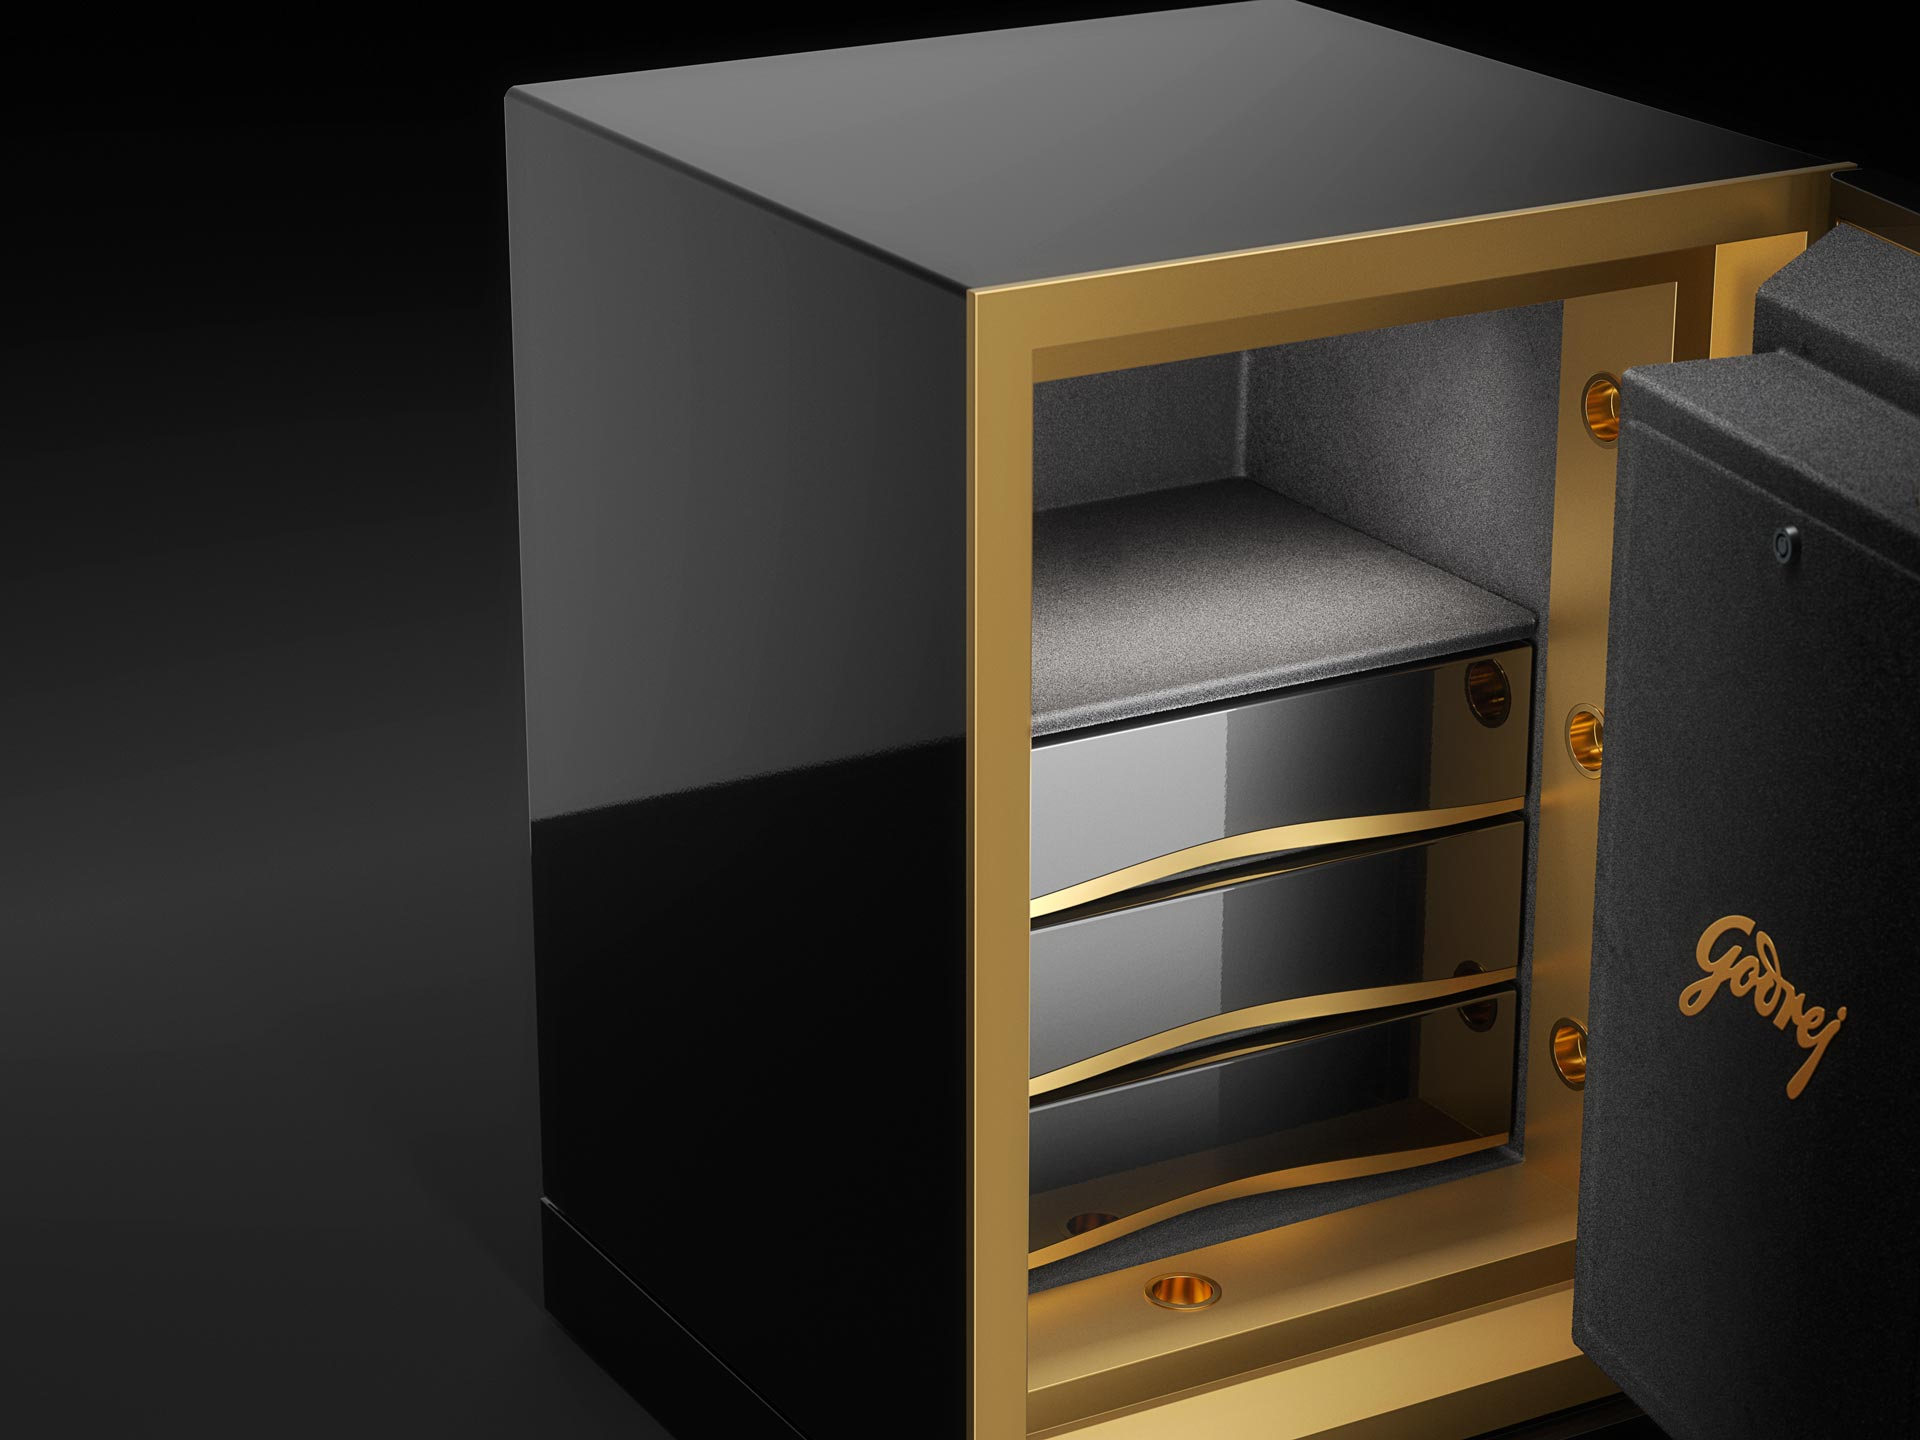 Picture of Nora safe with the door open to reveal the drawers inside